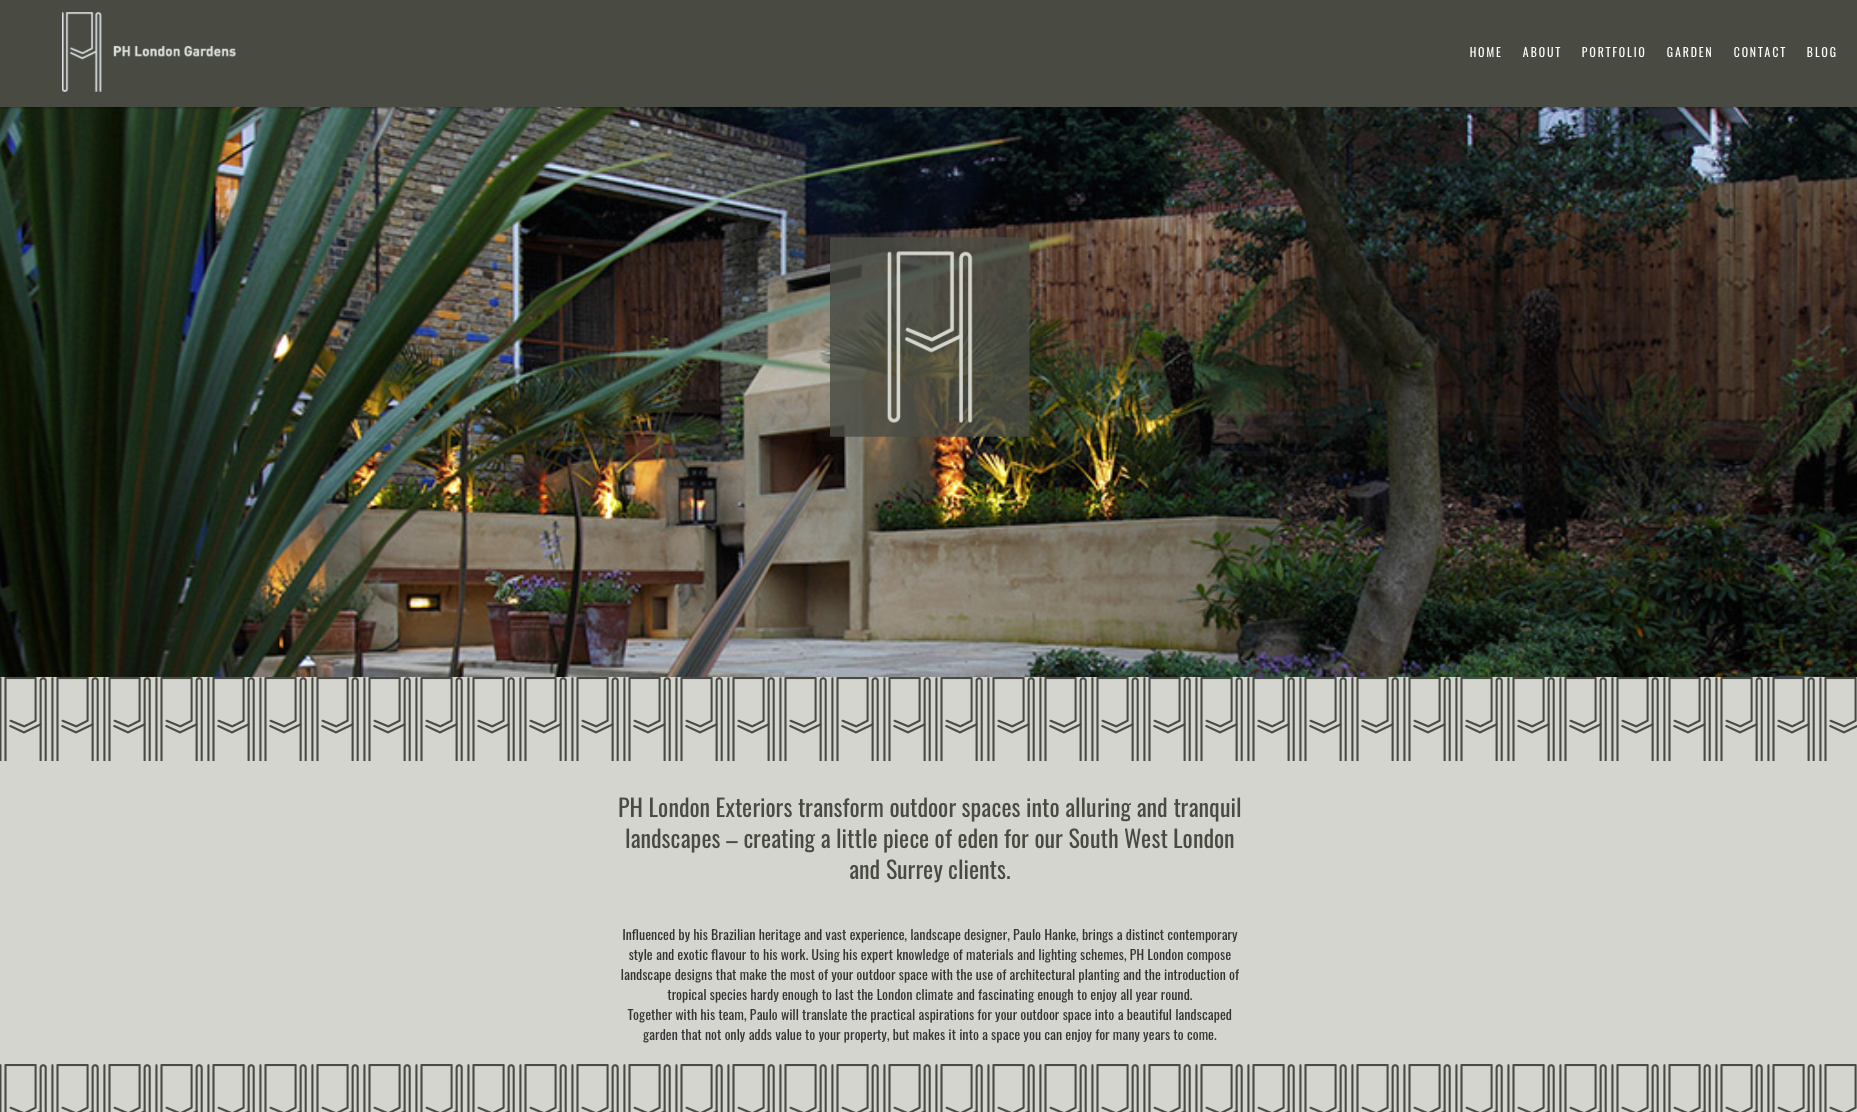 Screenshot of PH London 'Garden' Section' website redesign